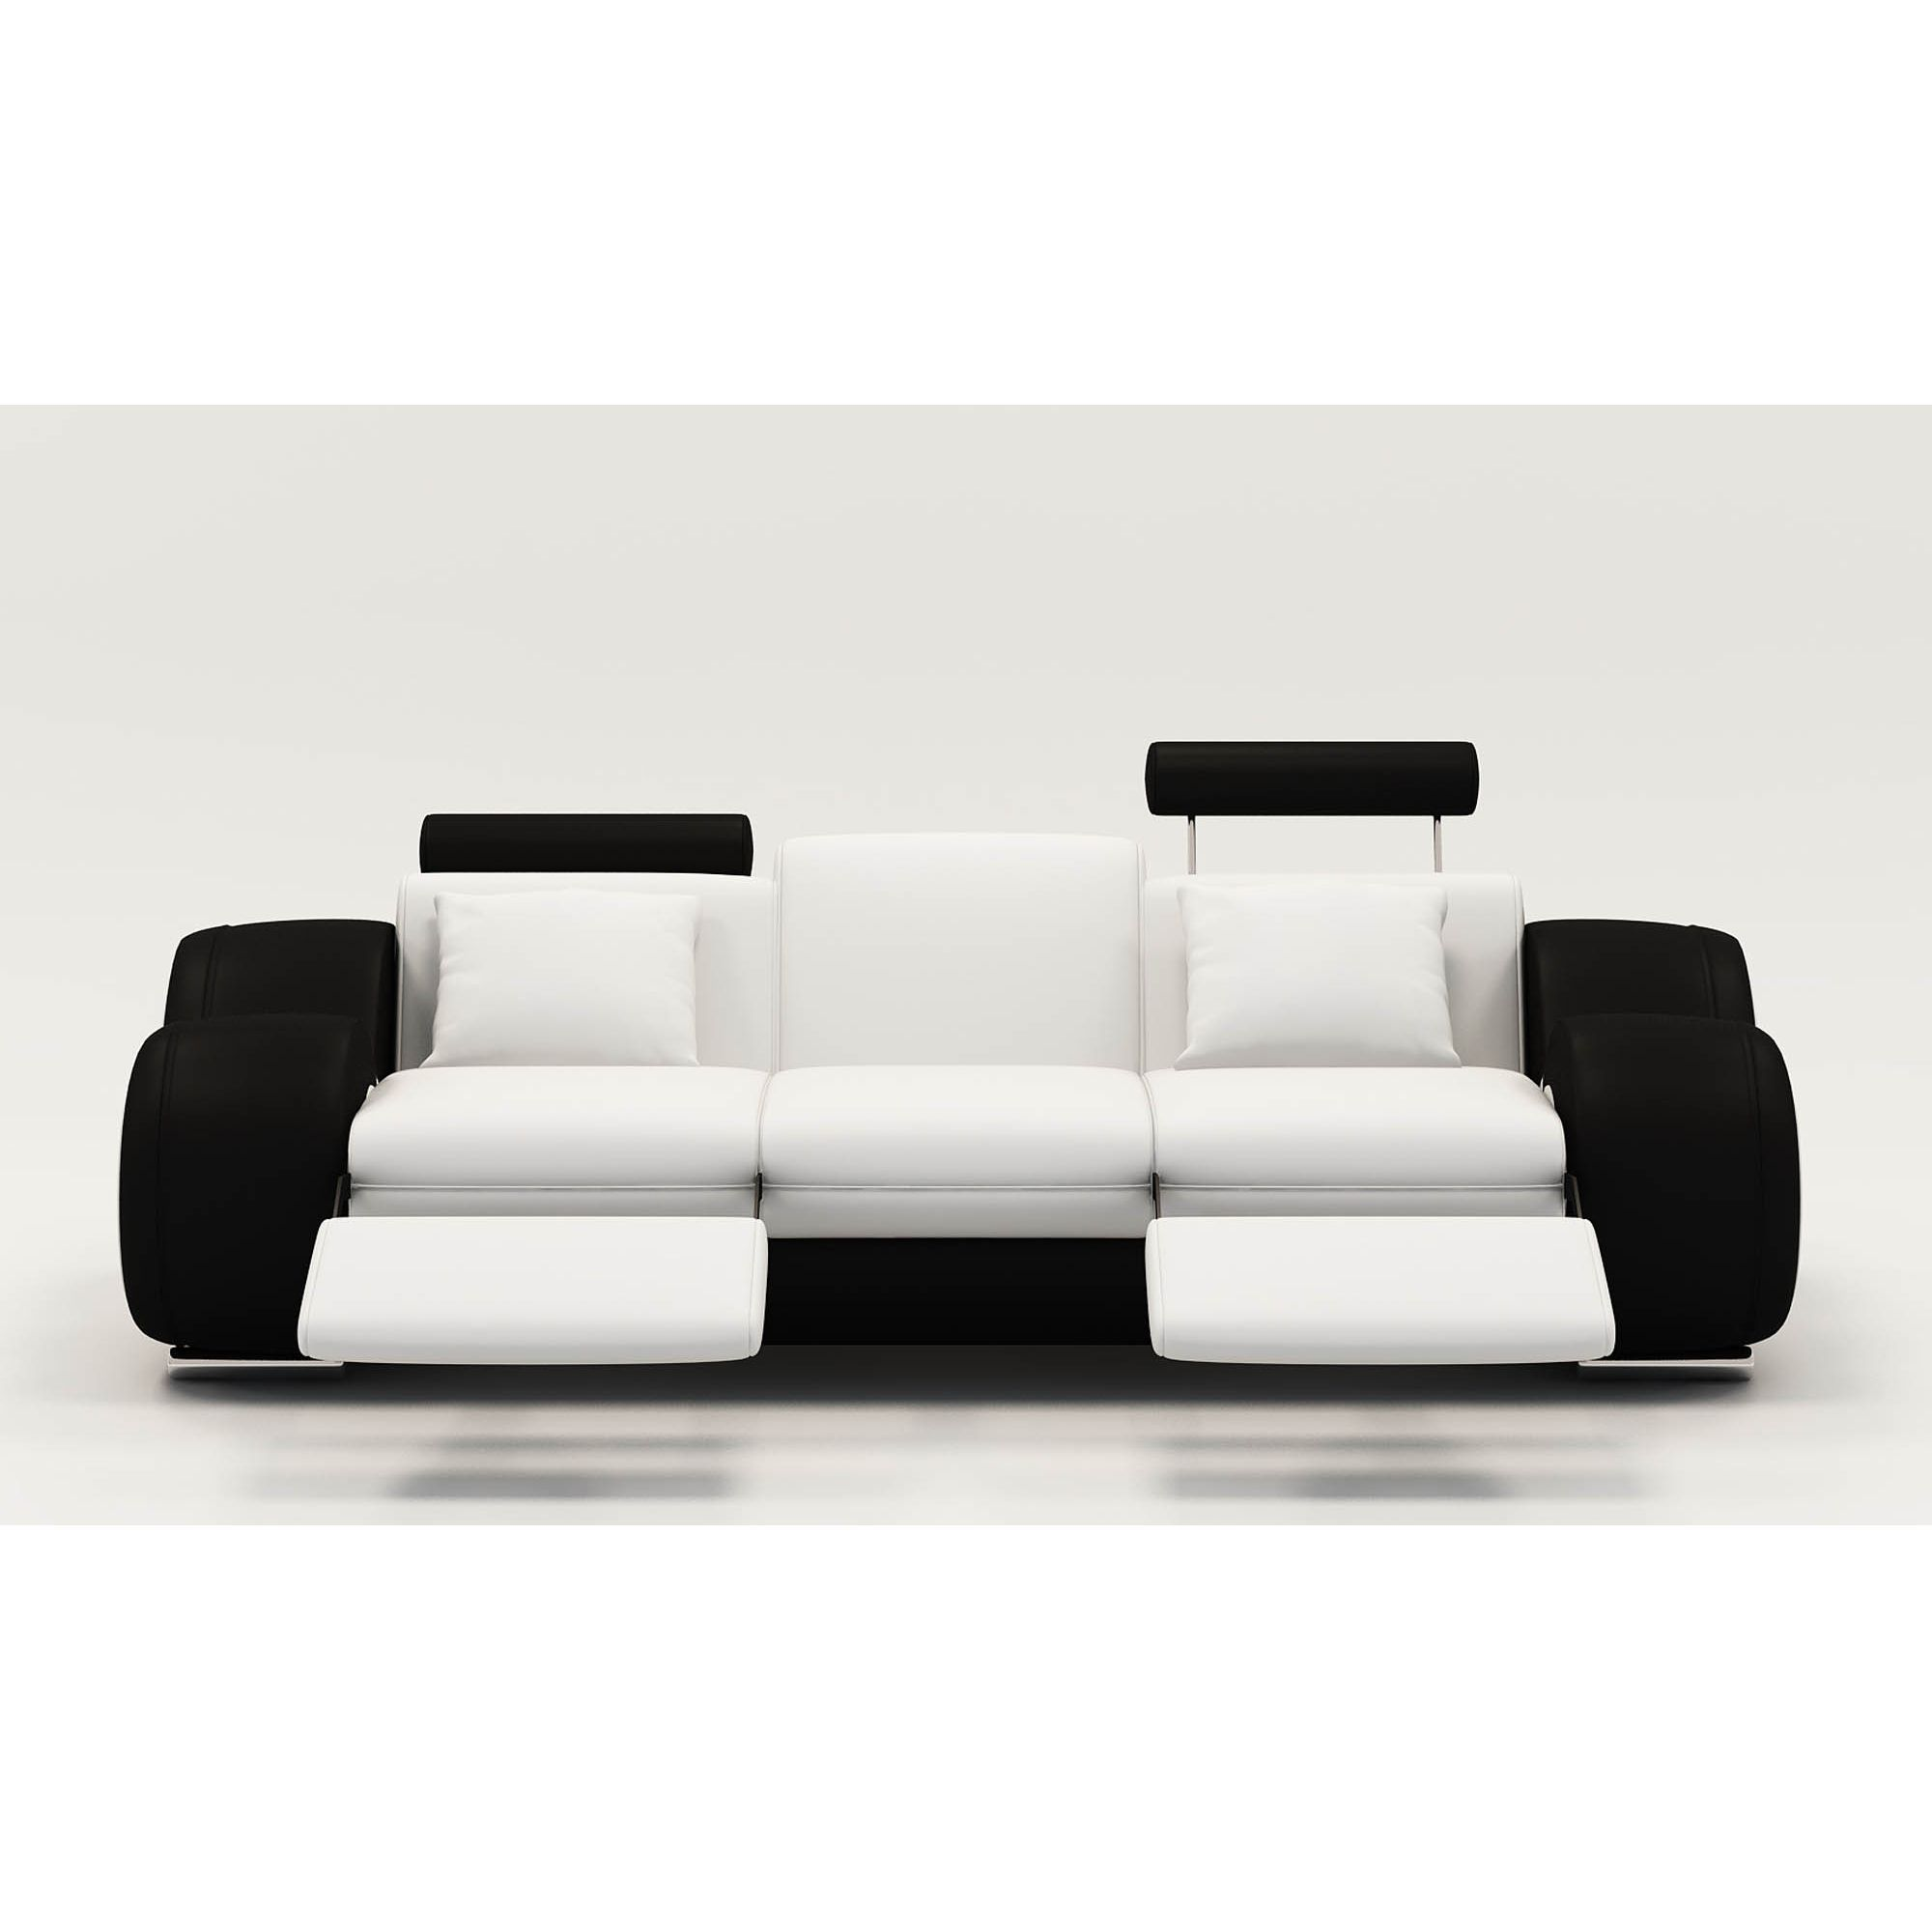 Deco in paris canape design 3 places cuir blanc et noir for Salon design noir et blanc